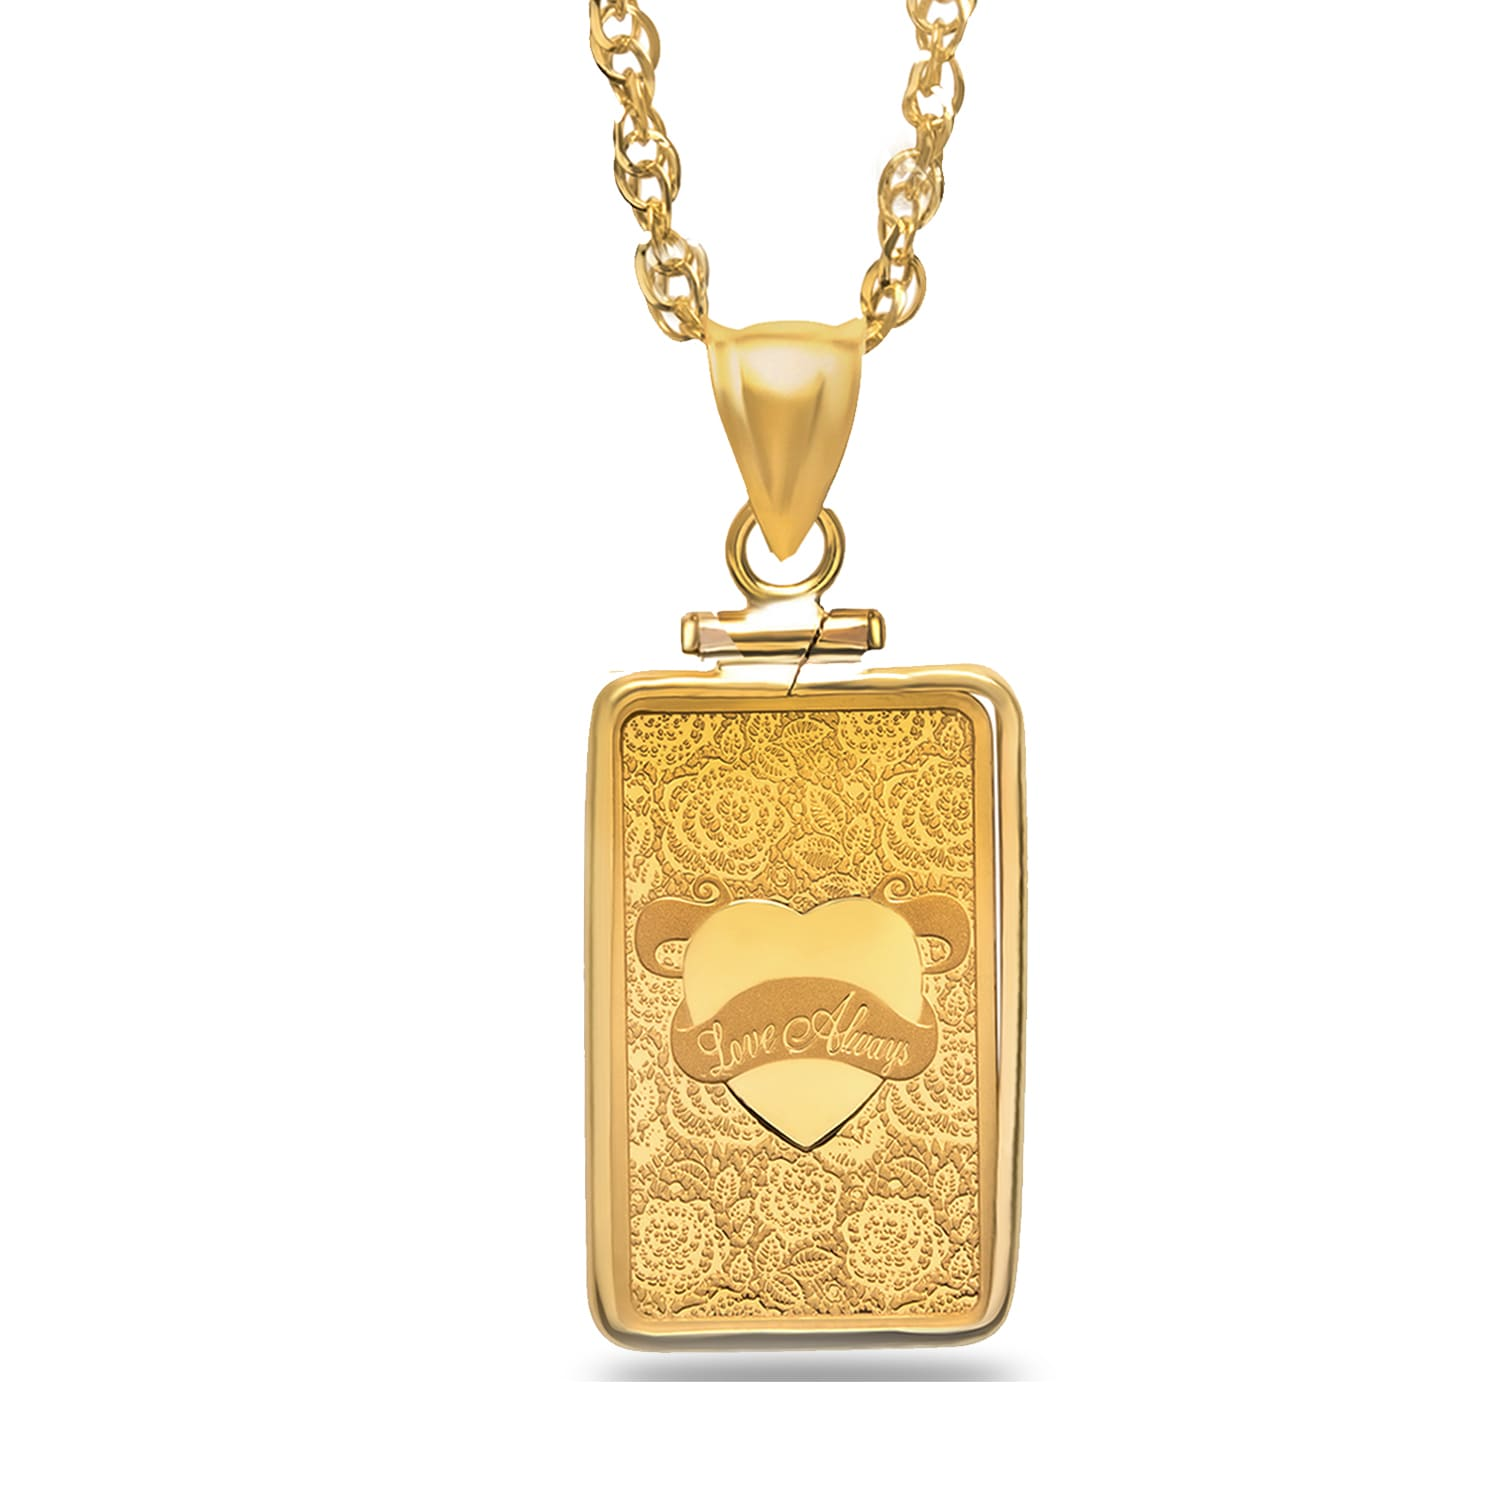 5 Gram Gold Pendant Pamp Suisse Love Always W Chain